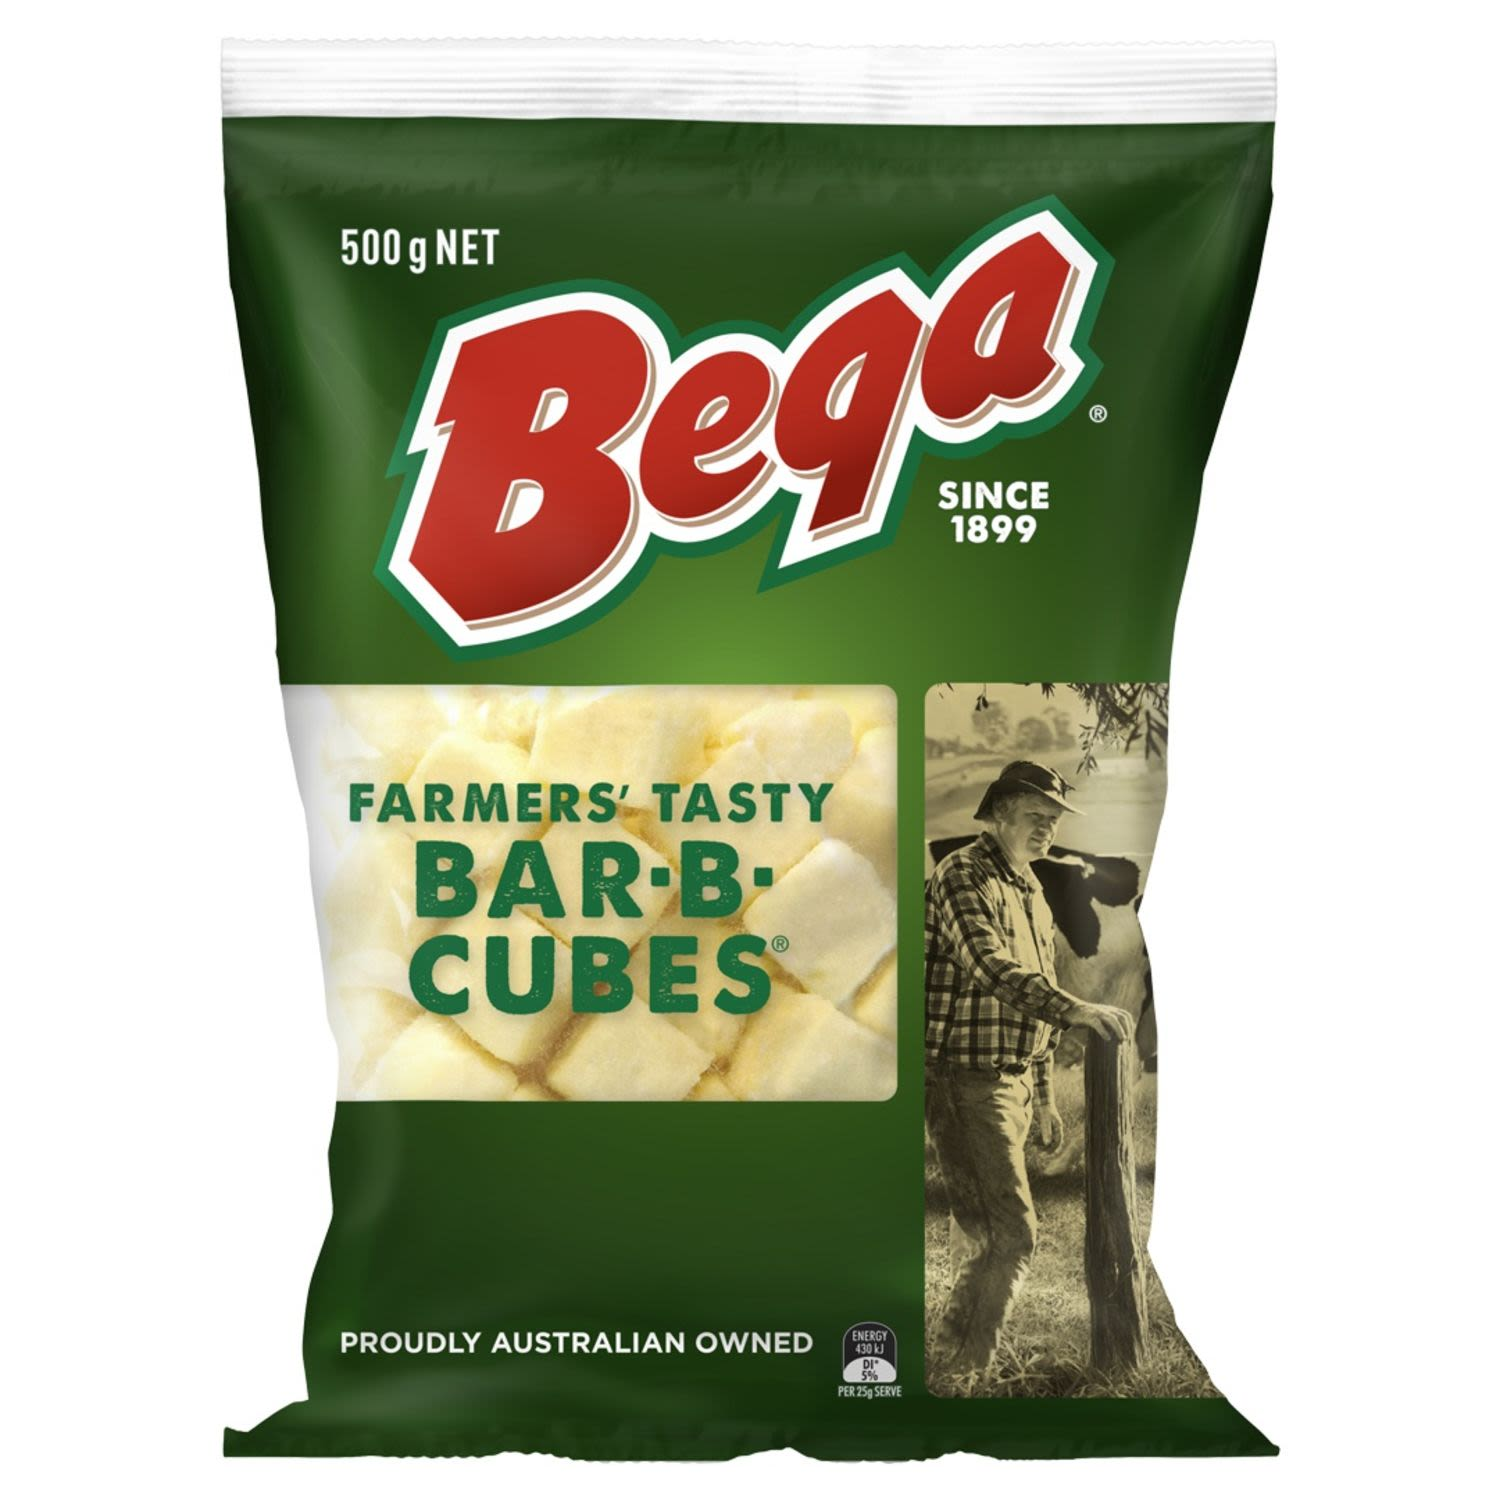 Proudly Australian owned. Contains 100% natural cheese source of calcium. What makes bega.. bega? Over 100 years of dairying heritage resulting in the unique bega taste you know and love.